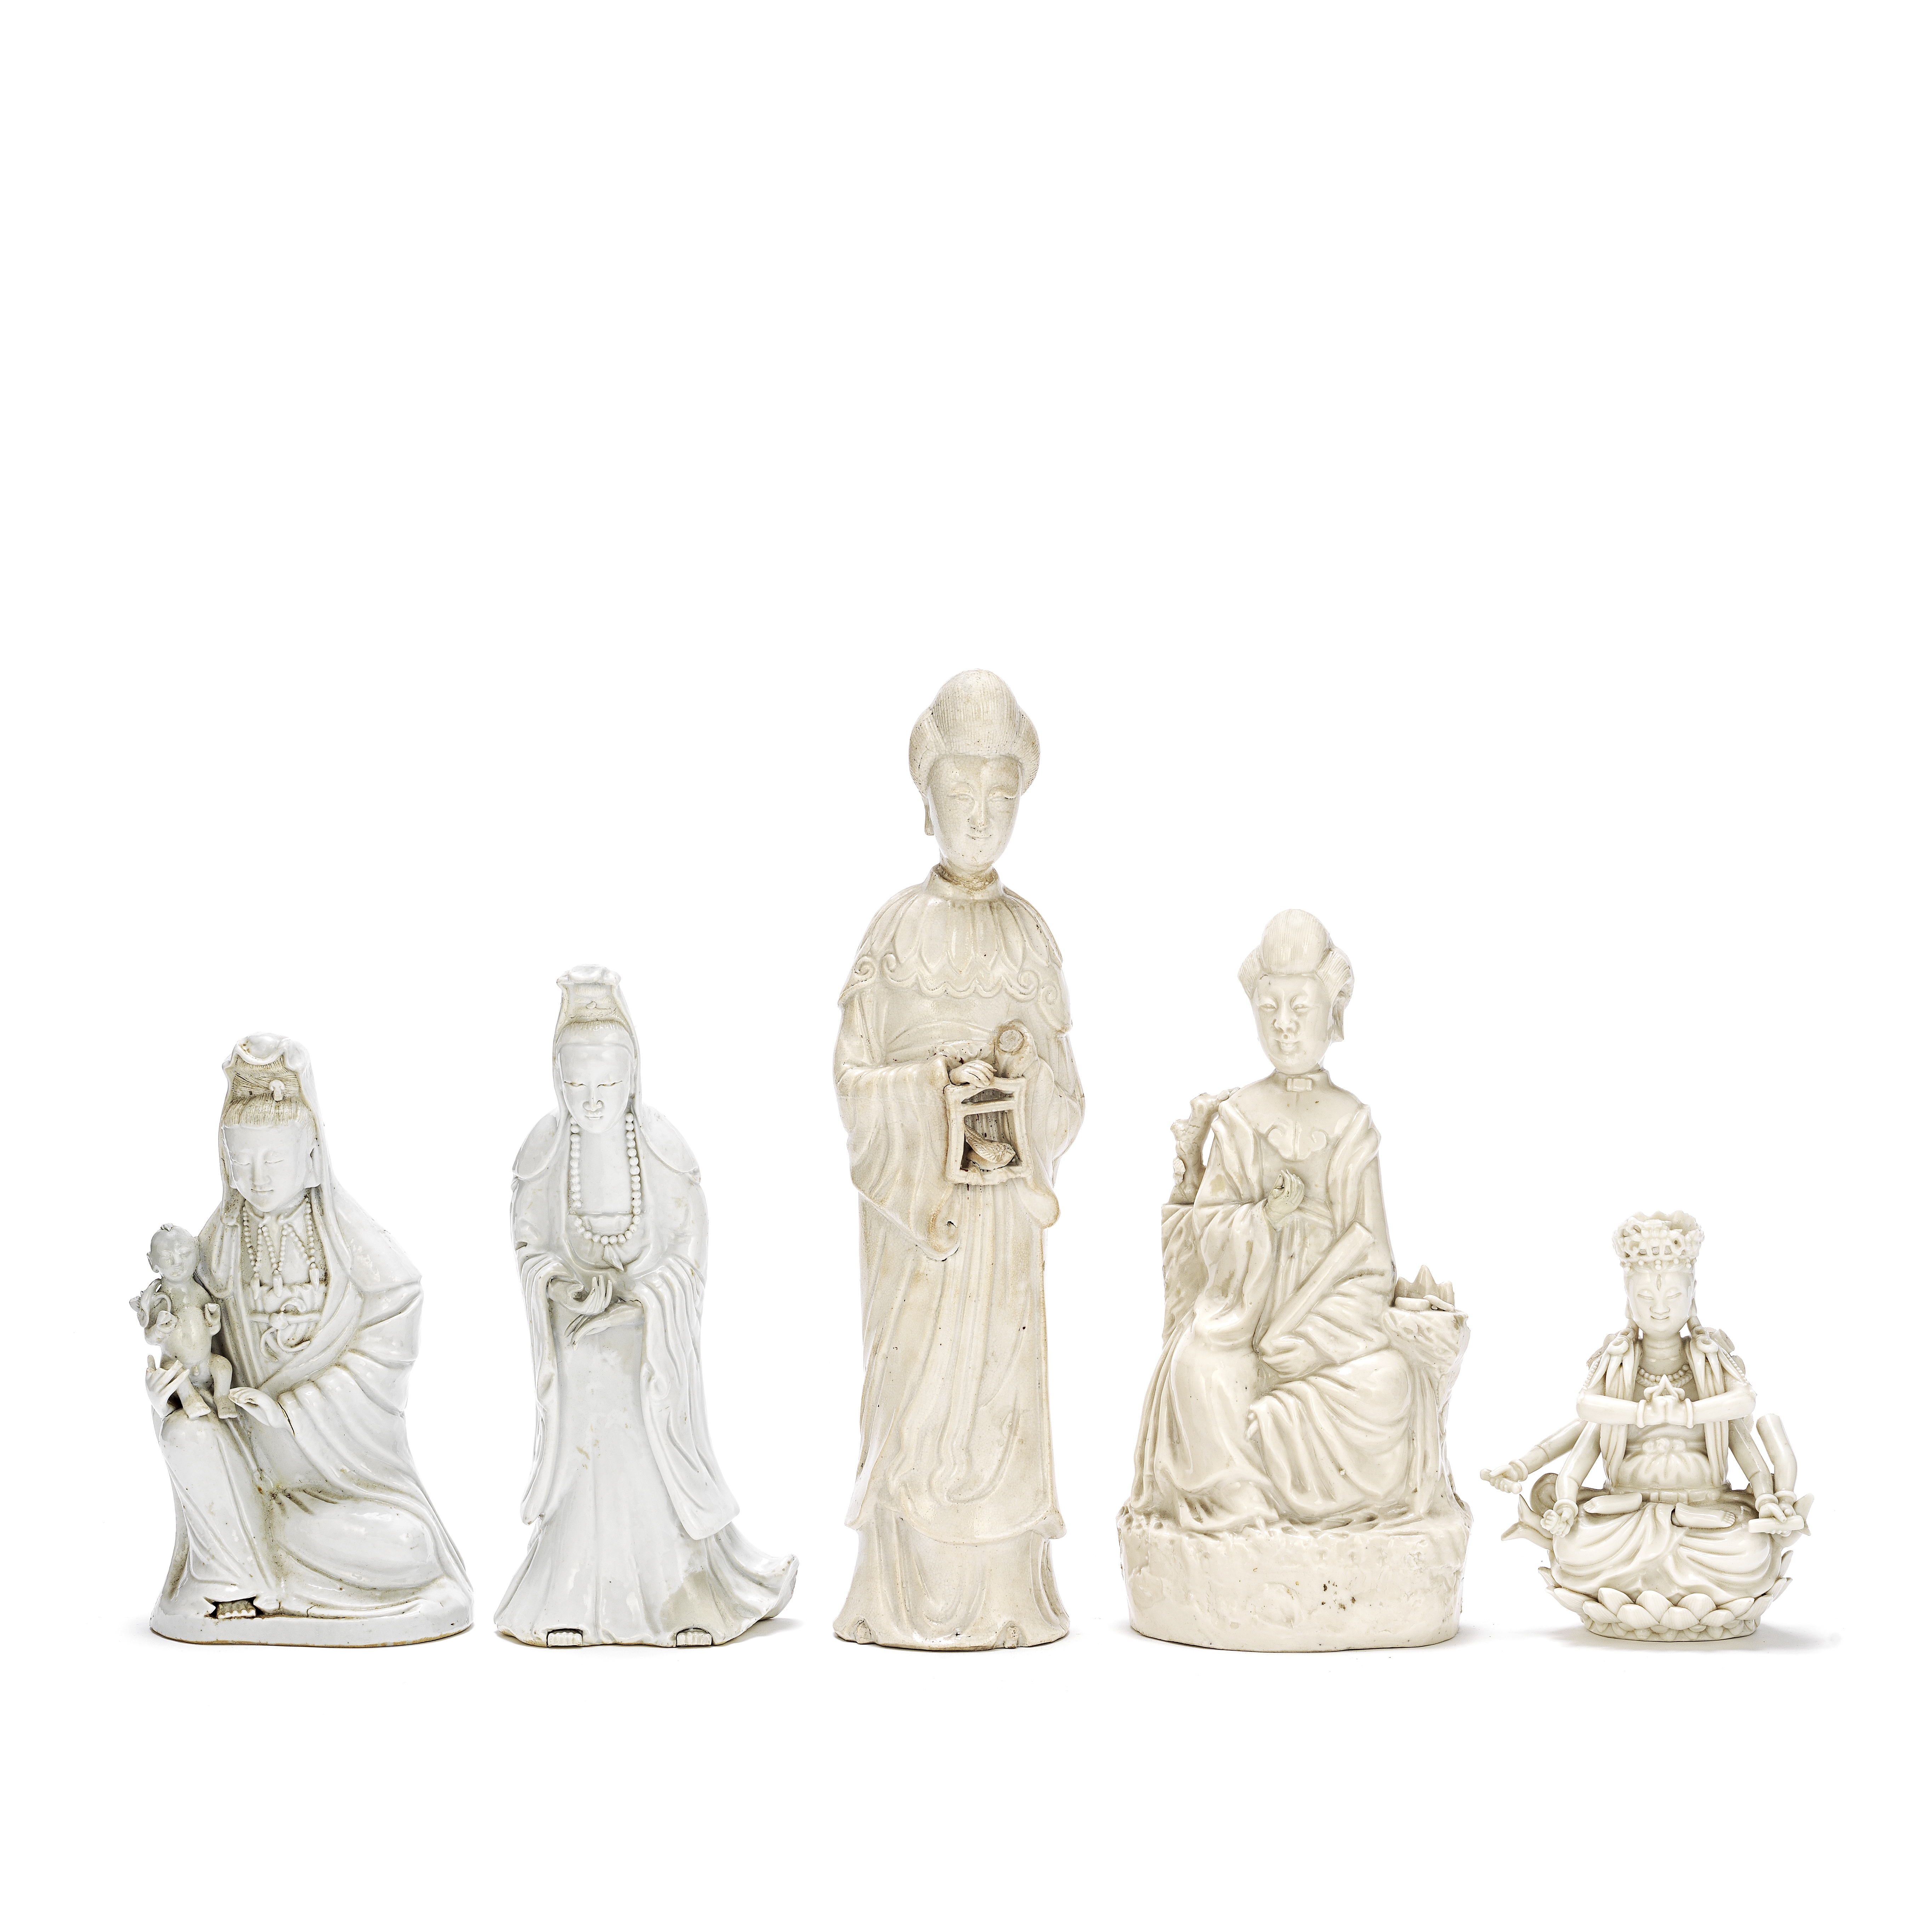 A GROUP OF FIVE BLANC-DE-CHINE FIGURES 19th/20th century (5)